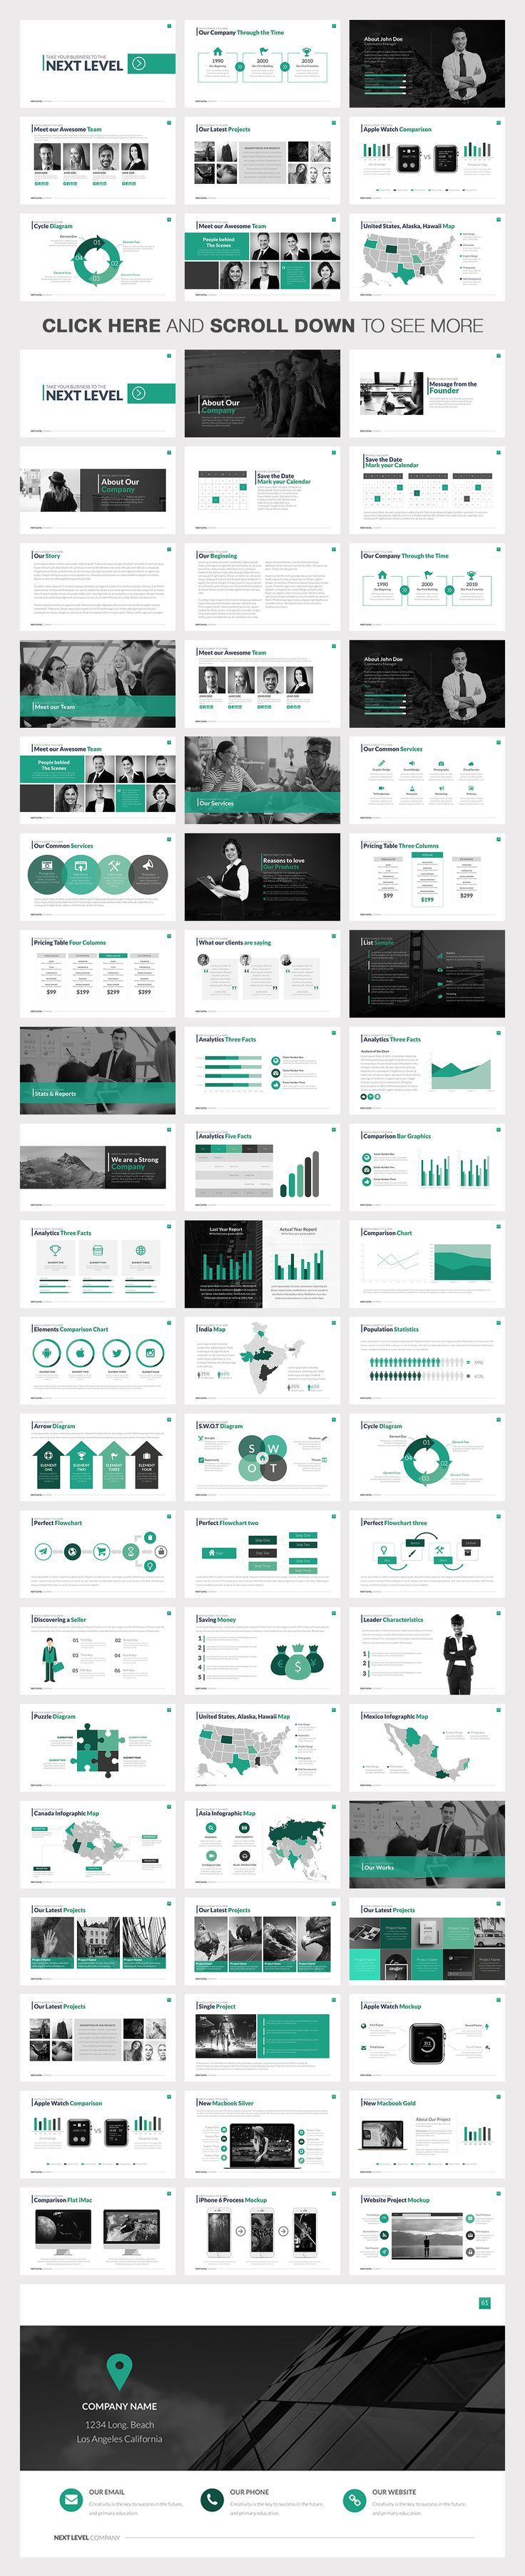 Next Level Powerpoint Template by Slidedizer on Creative Market                                                                                                                                                                                 もっと見る